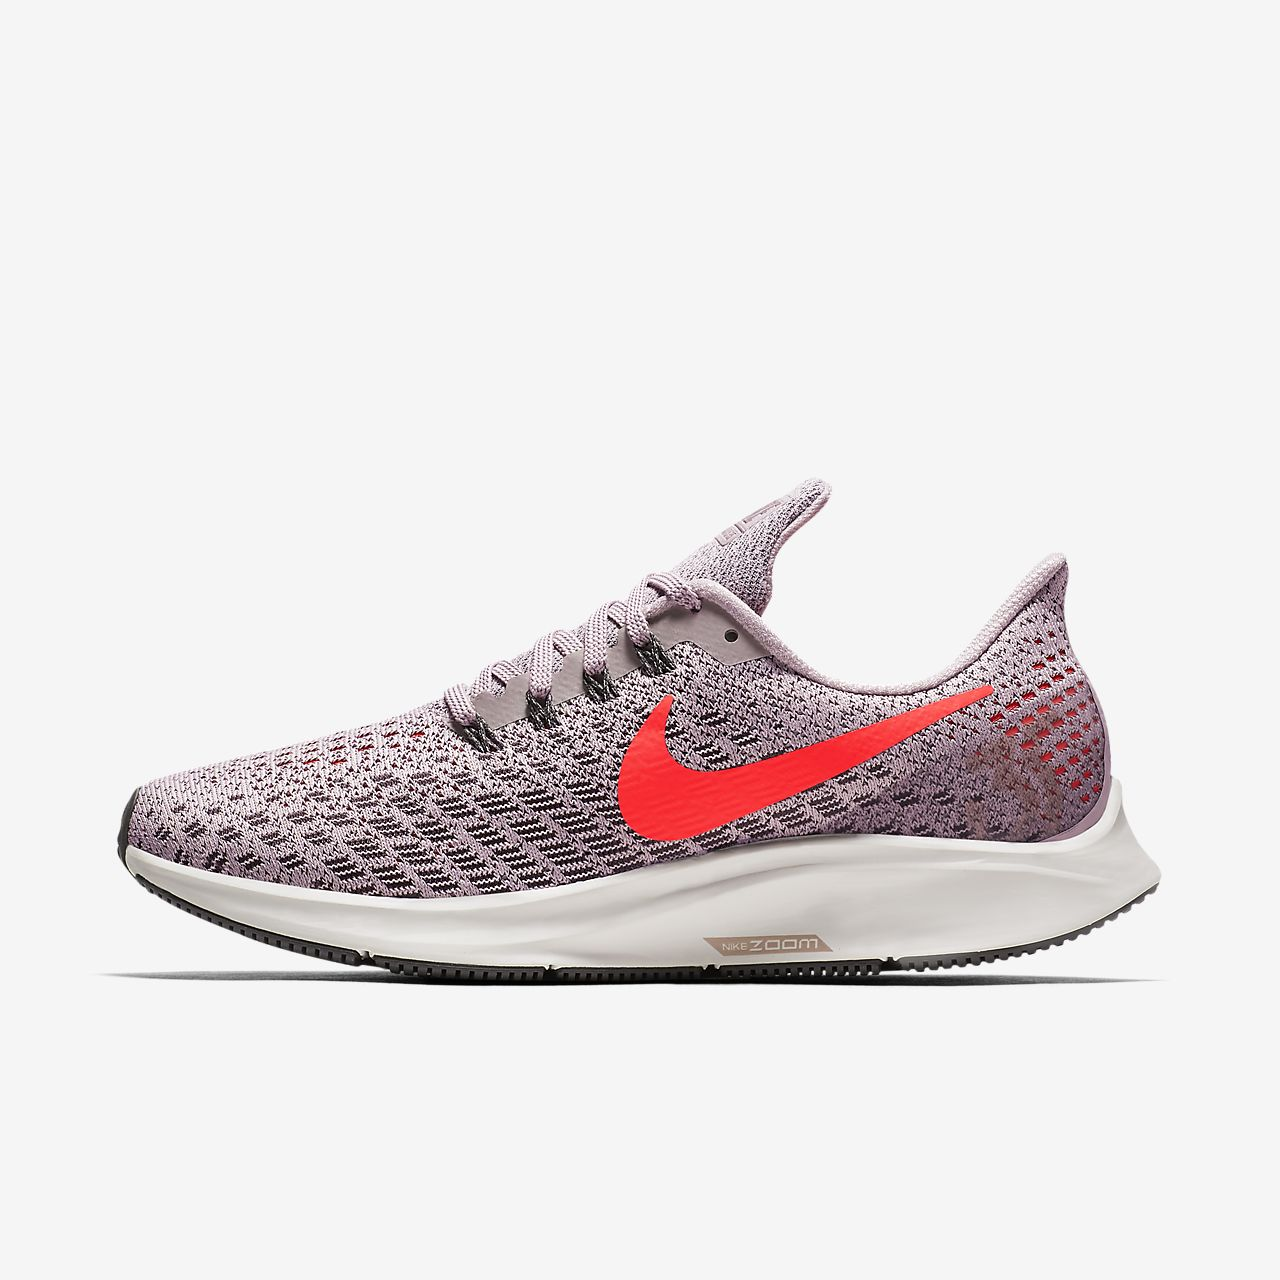 6ee34c2209f4 Nike Air Zoom Pegasus 35 Women s Running Shoe. Nike.com CH